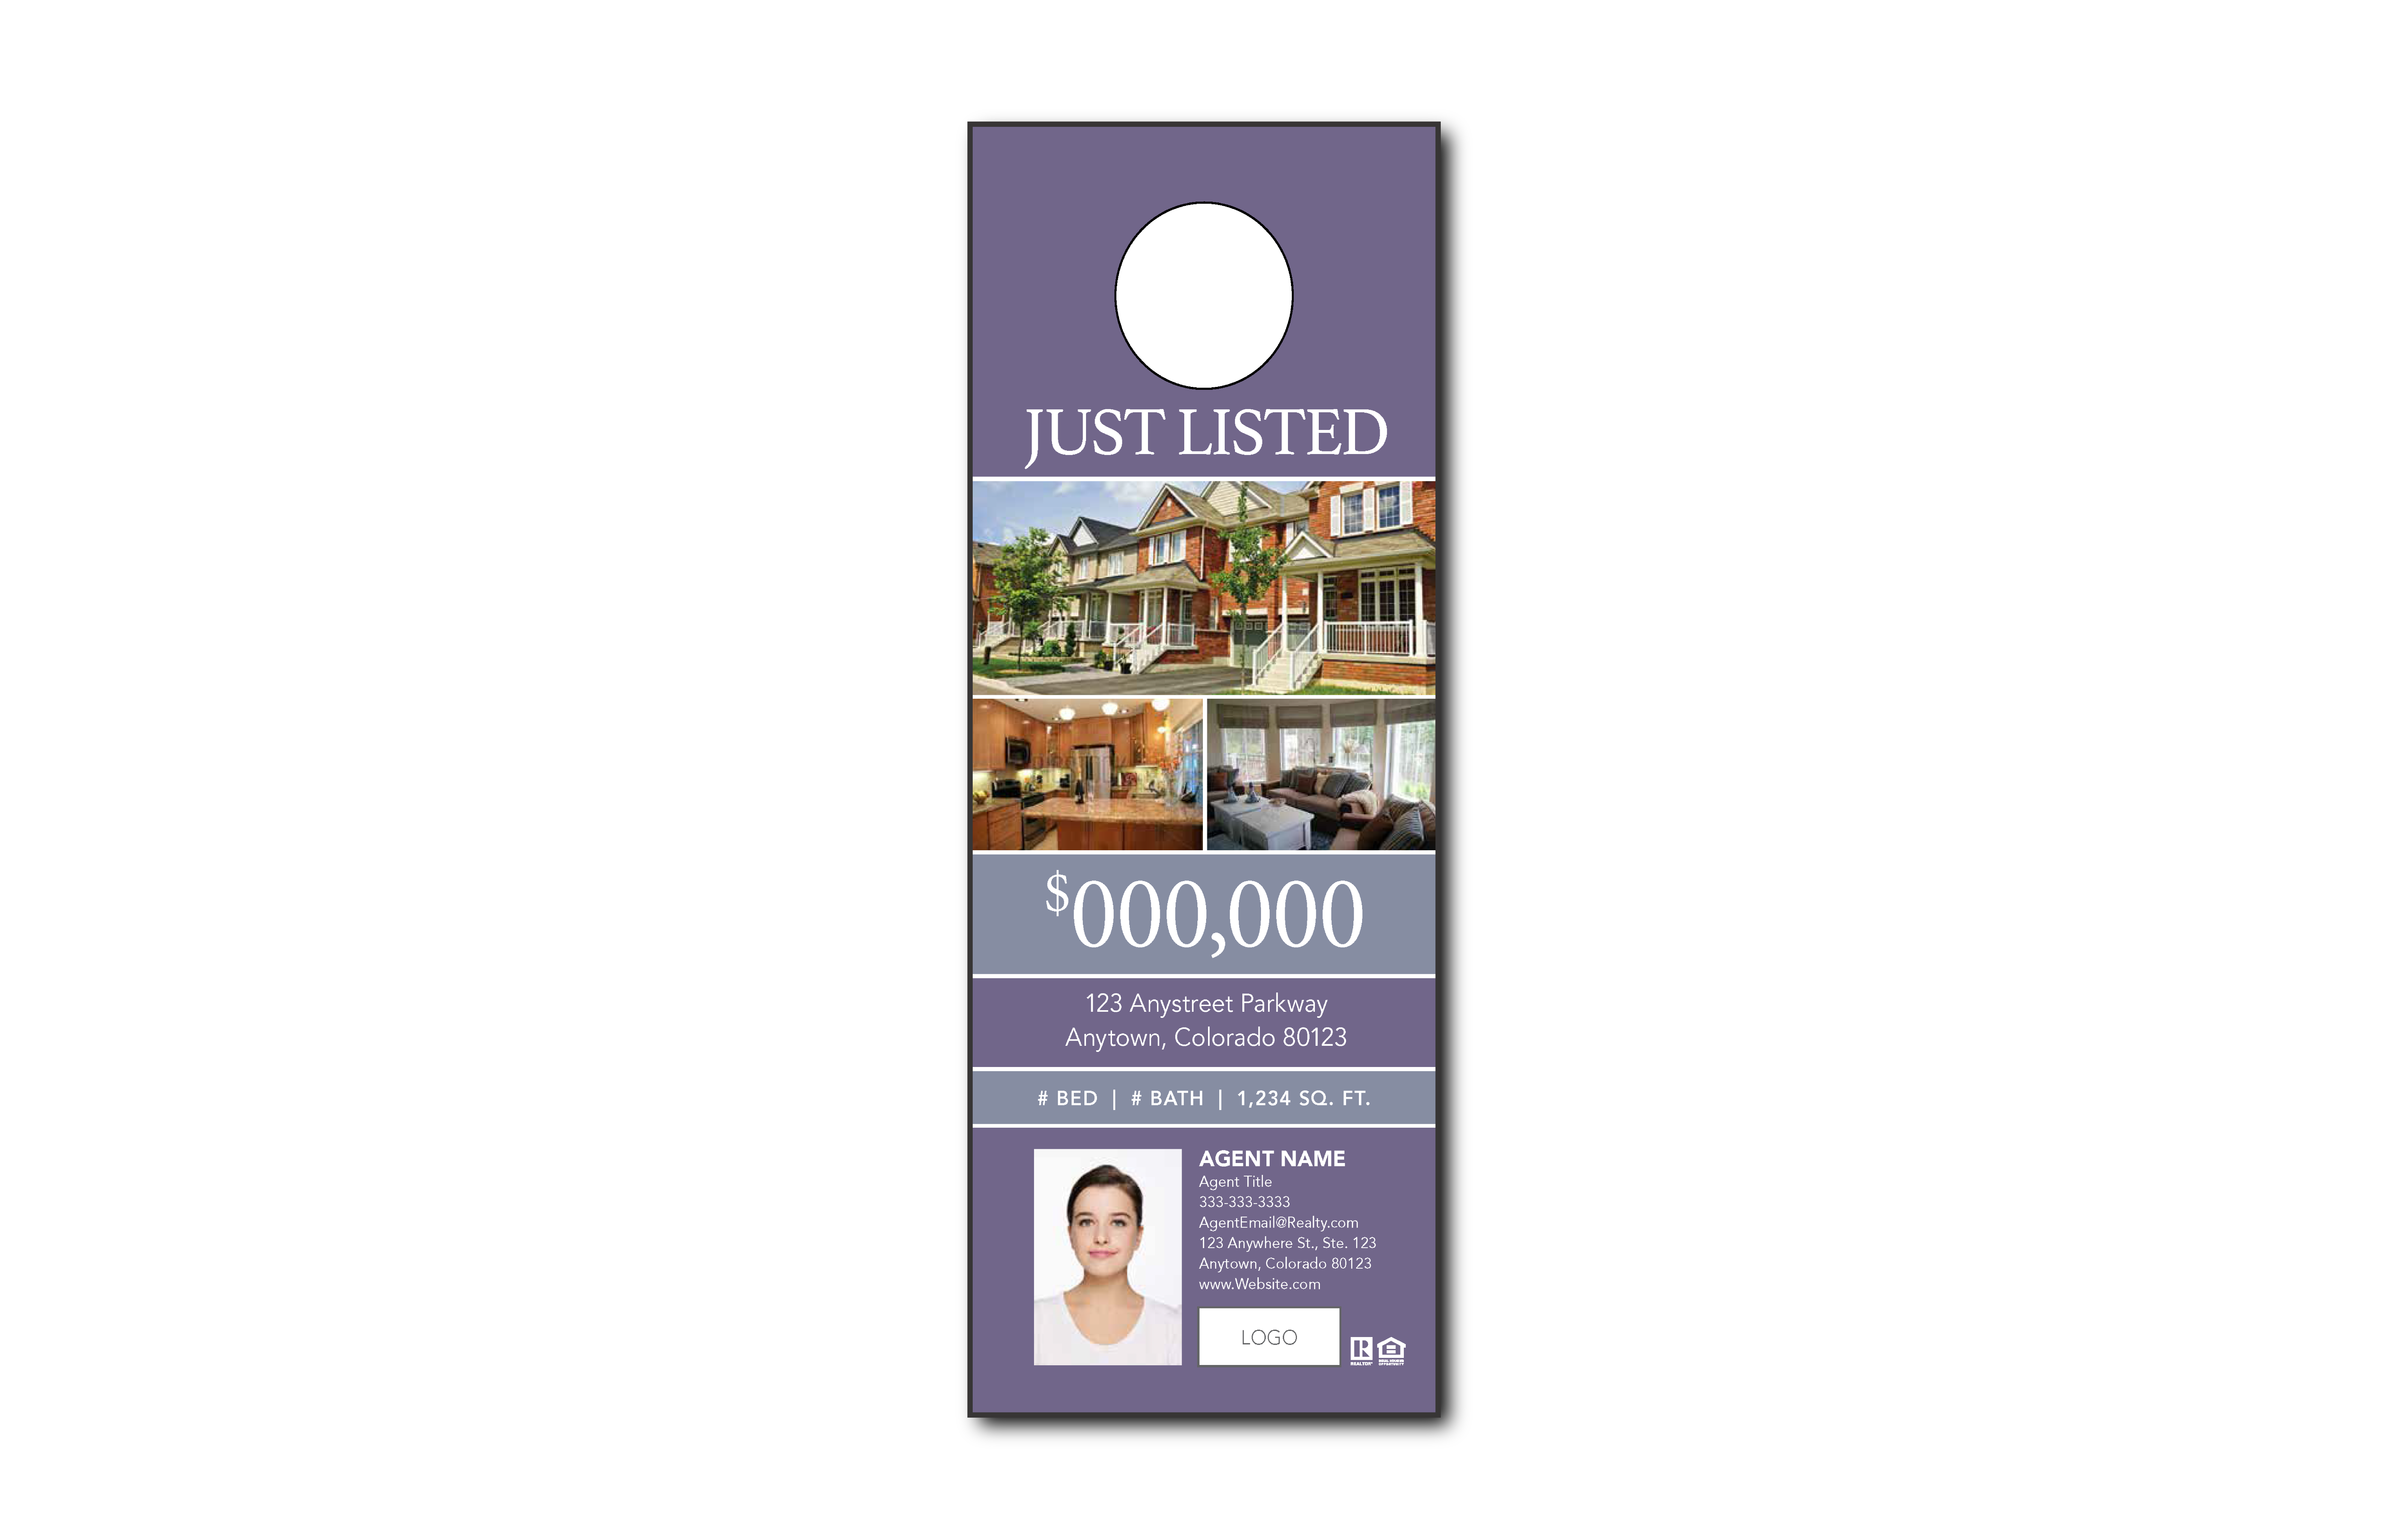 Plumb Marketing Doorhanger 2 One Sided Purple - 1709